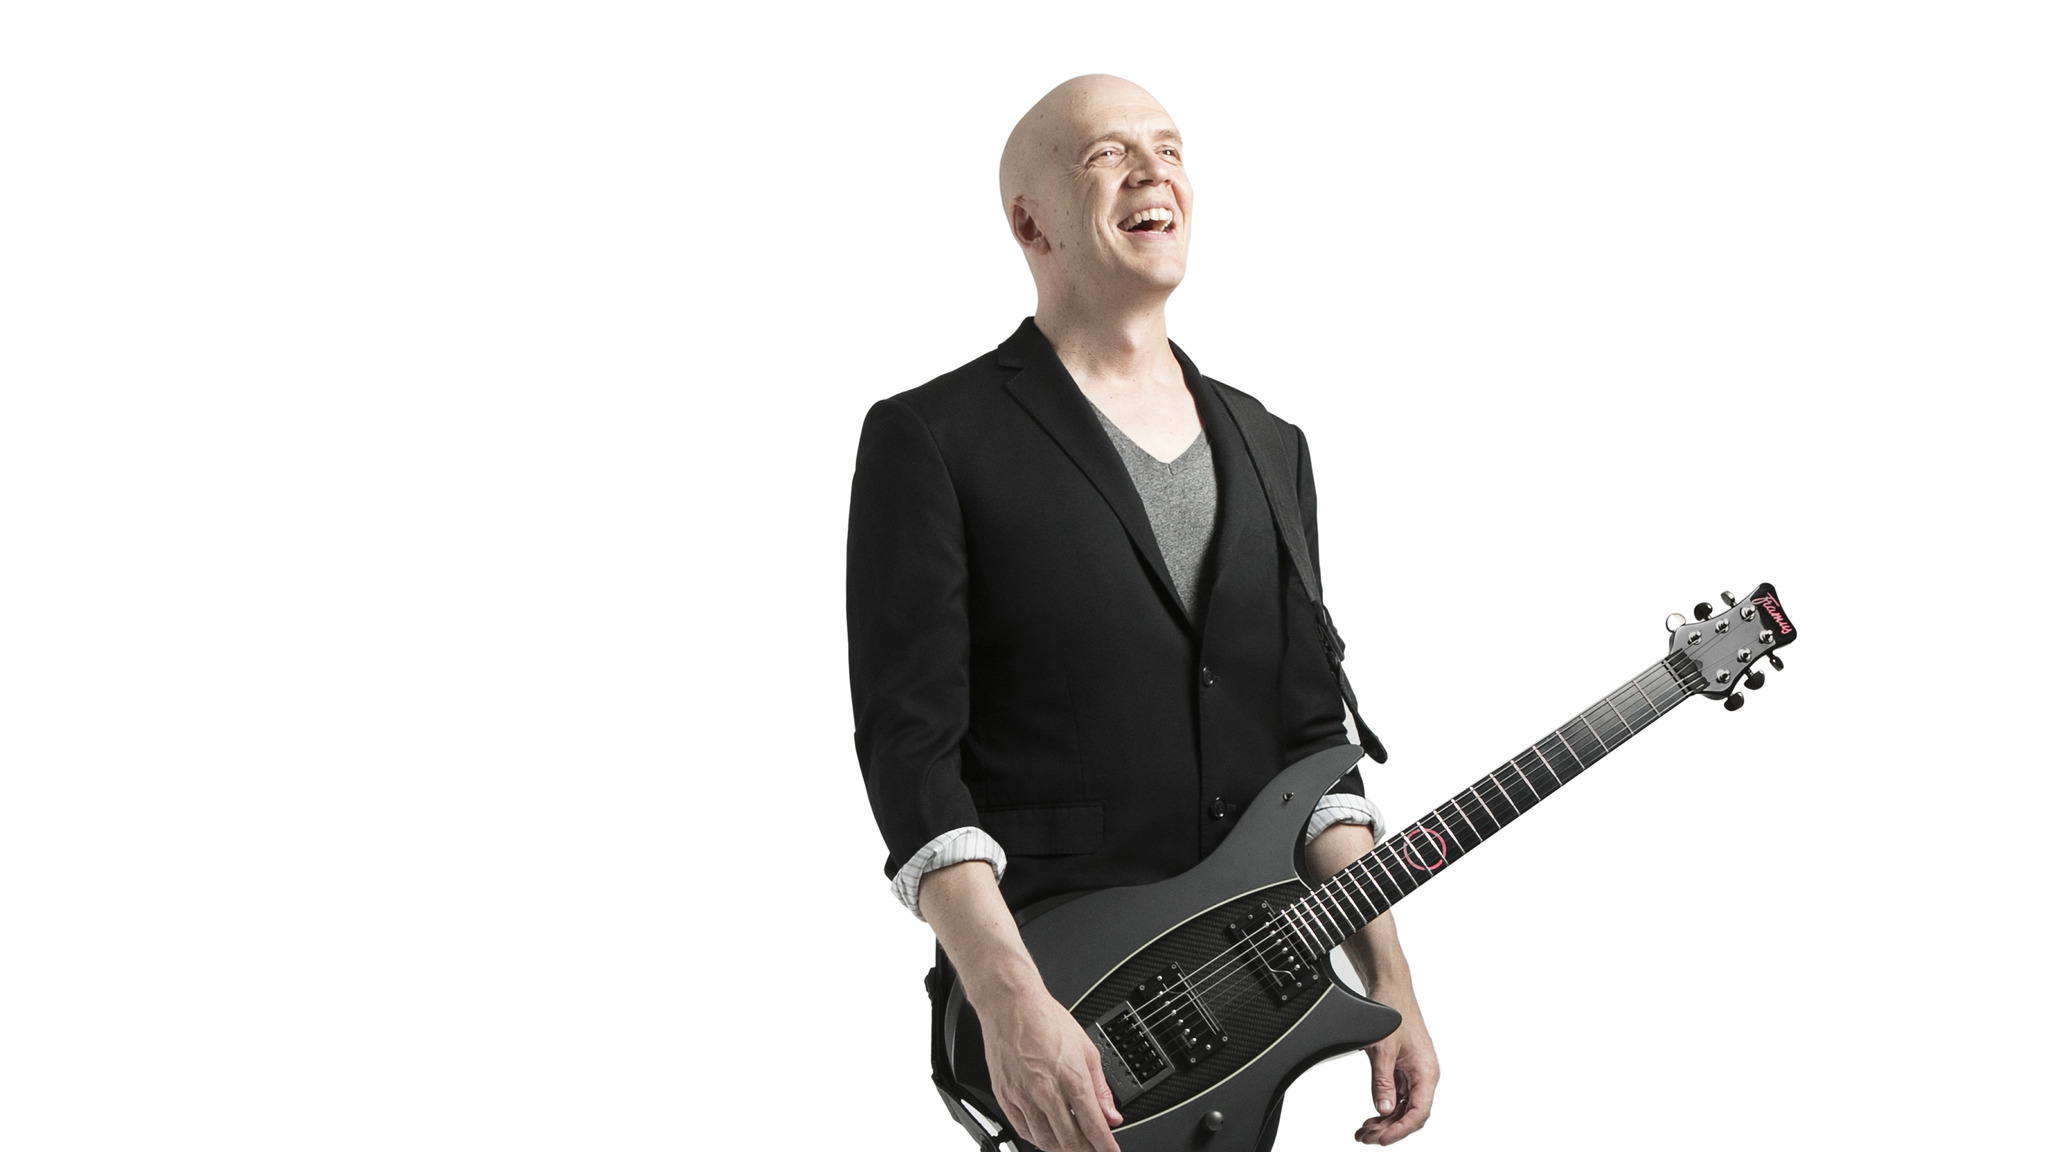 Devin Townsend, Haken, and The Contortionist to Tour North America in Early 2020